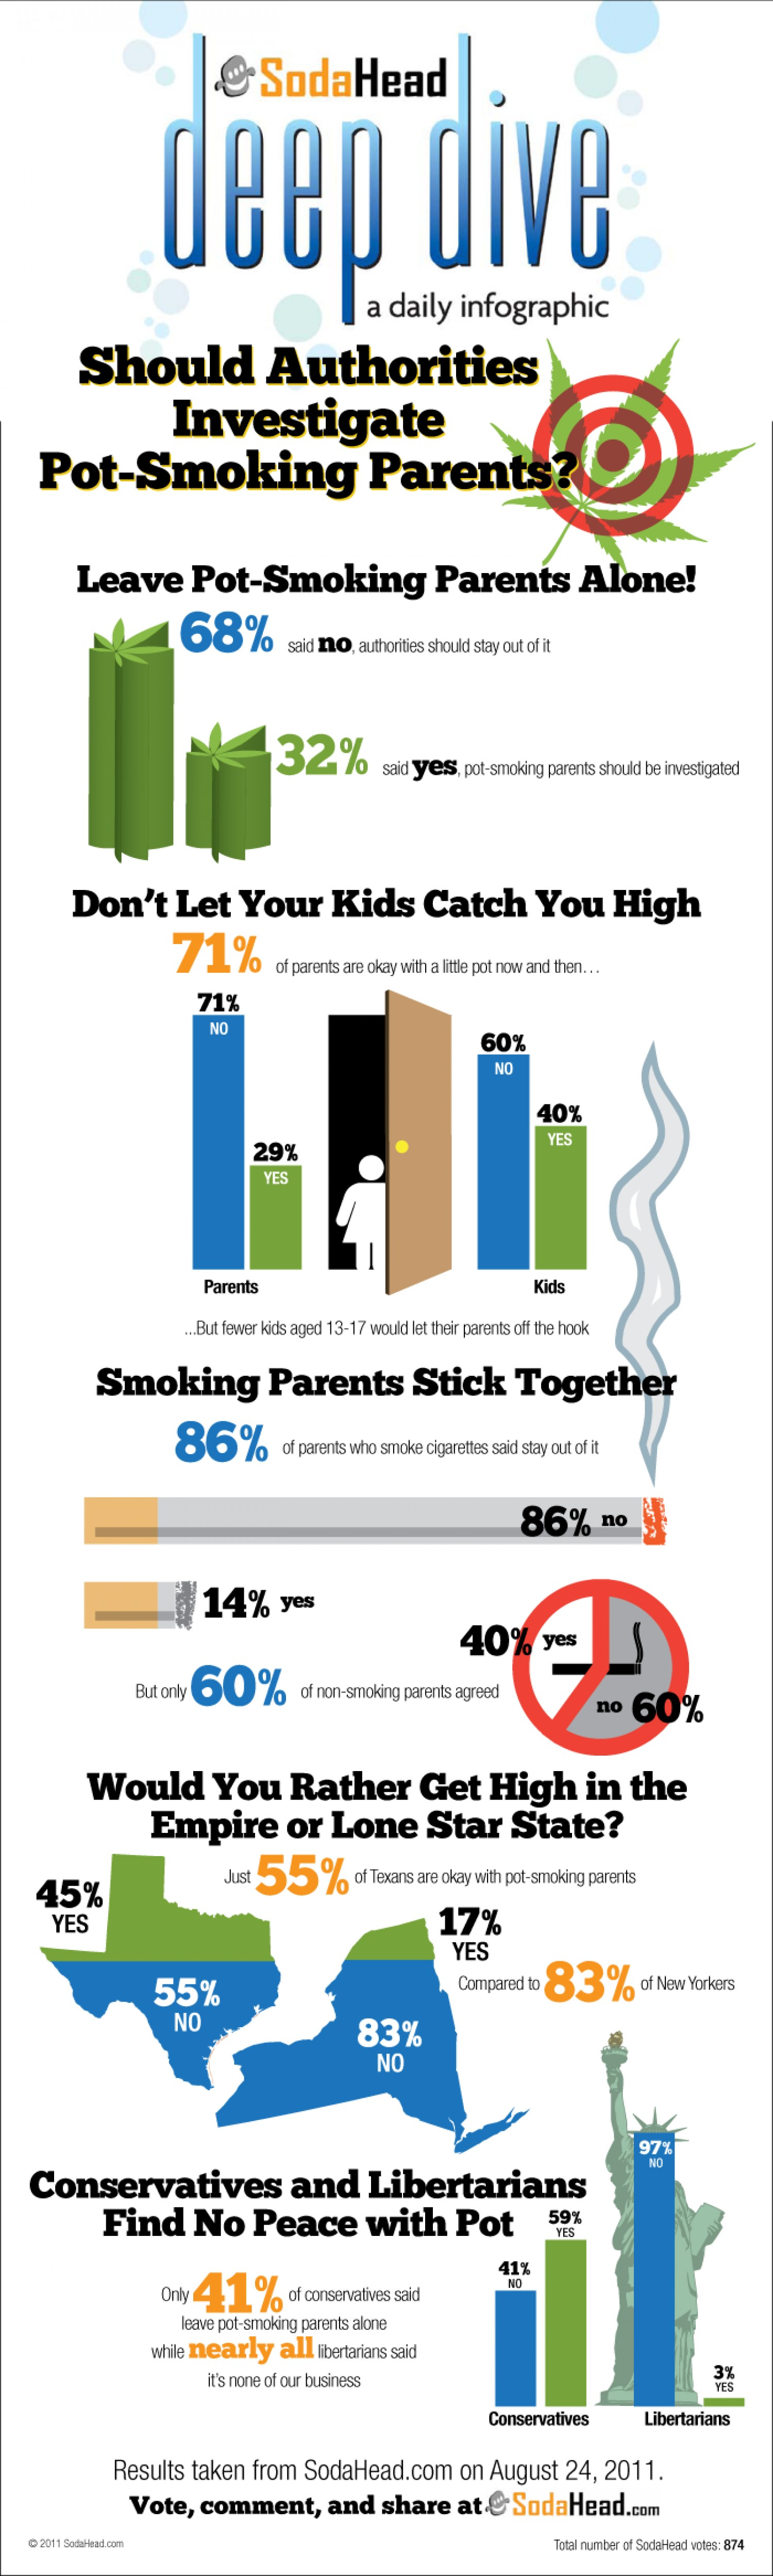 5. Should Authorities Investigate Pot Smoking Parents